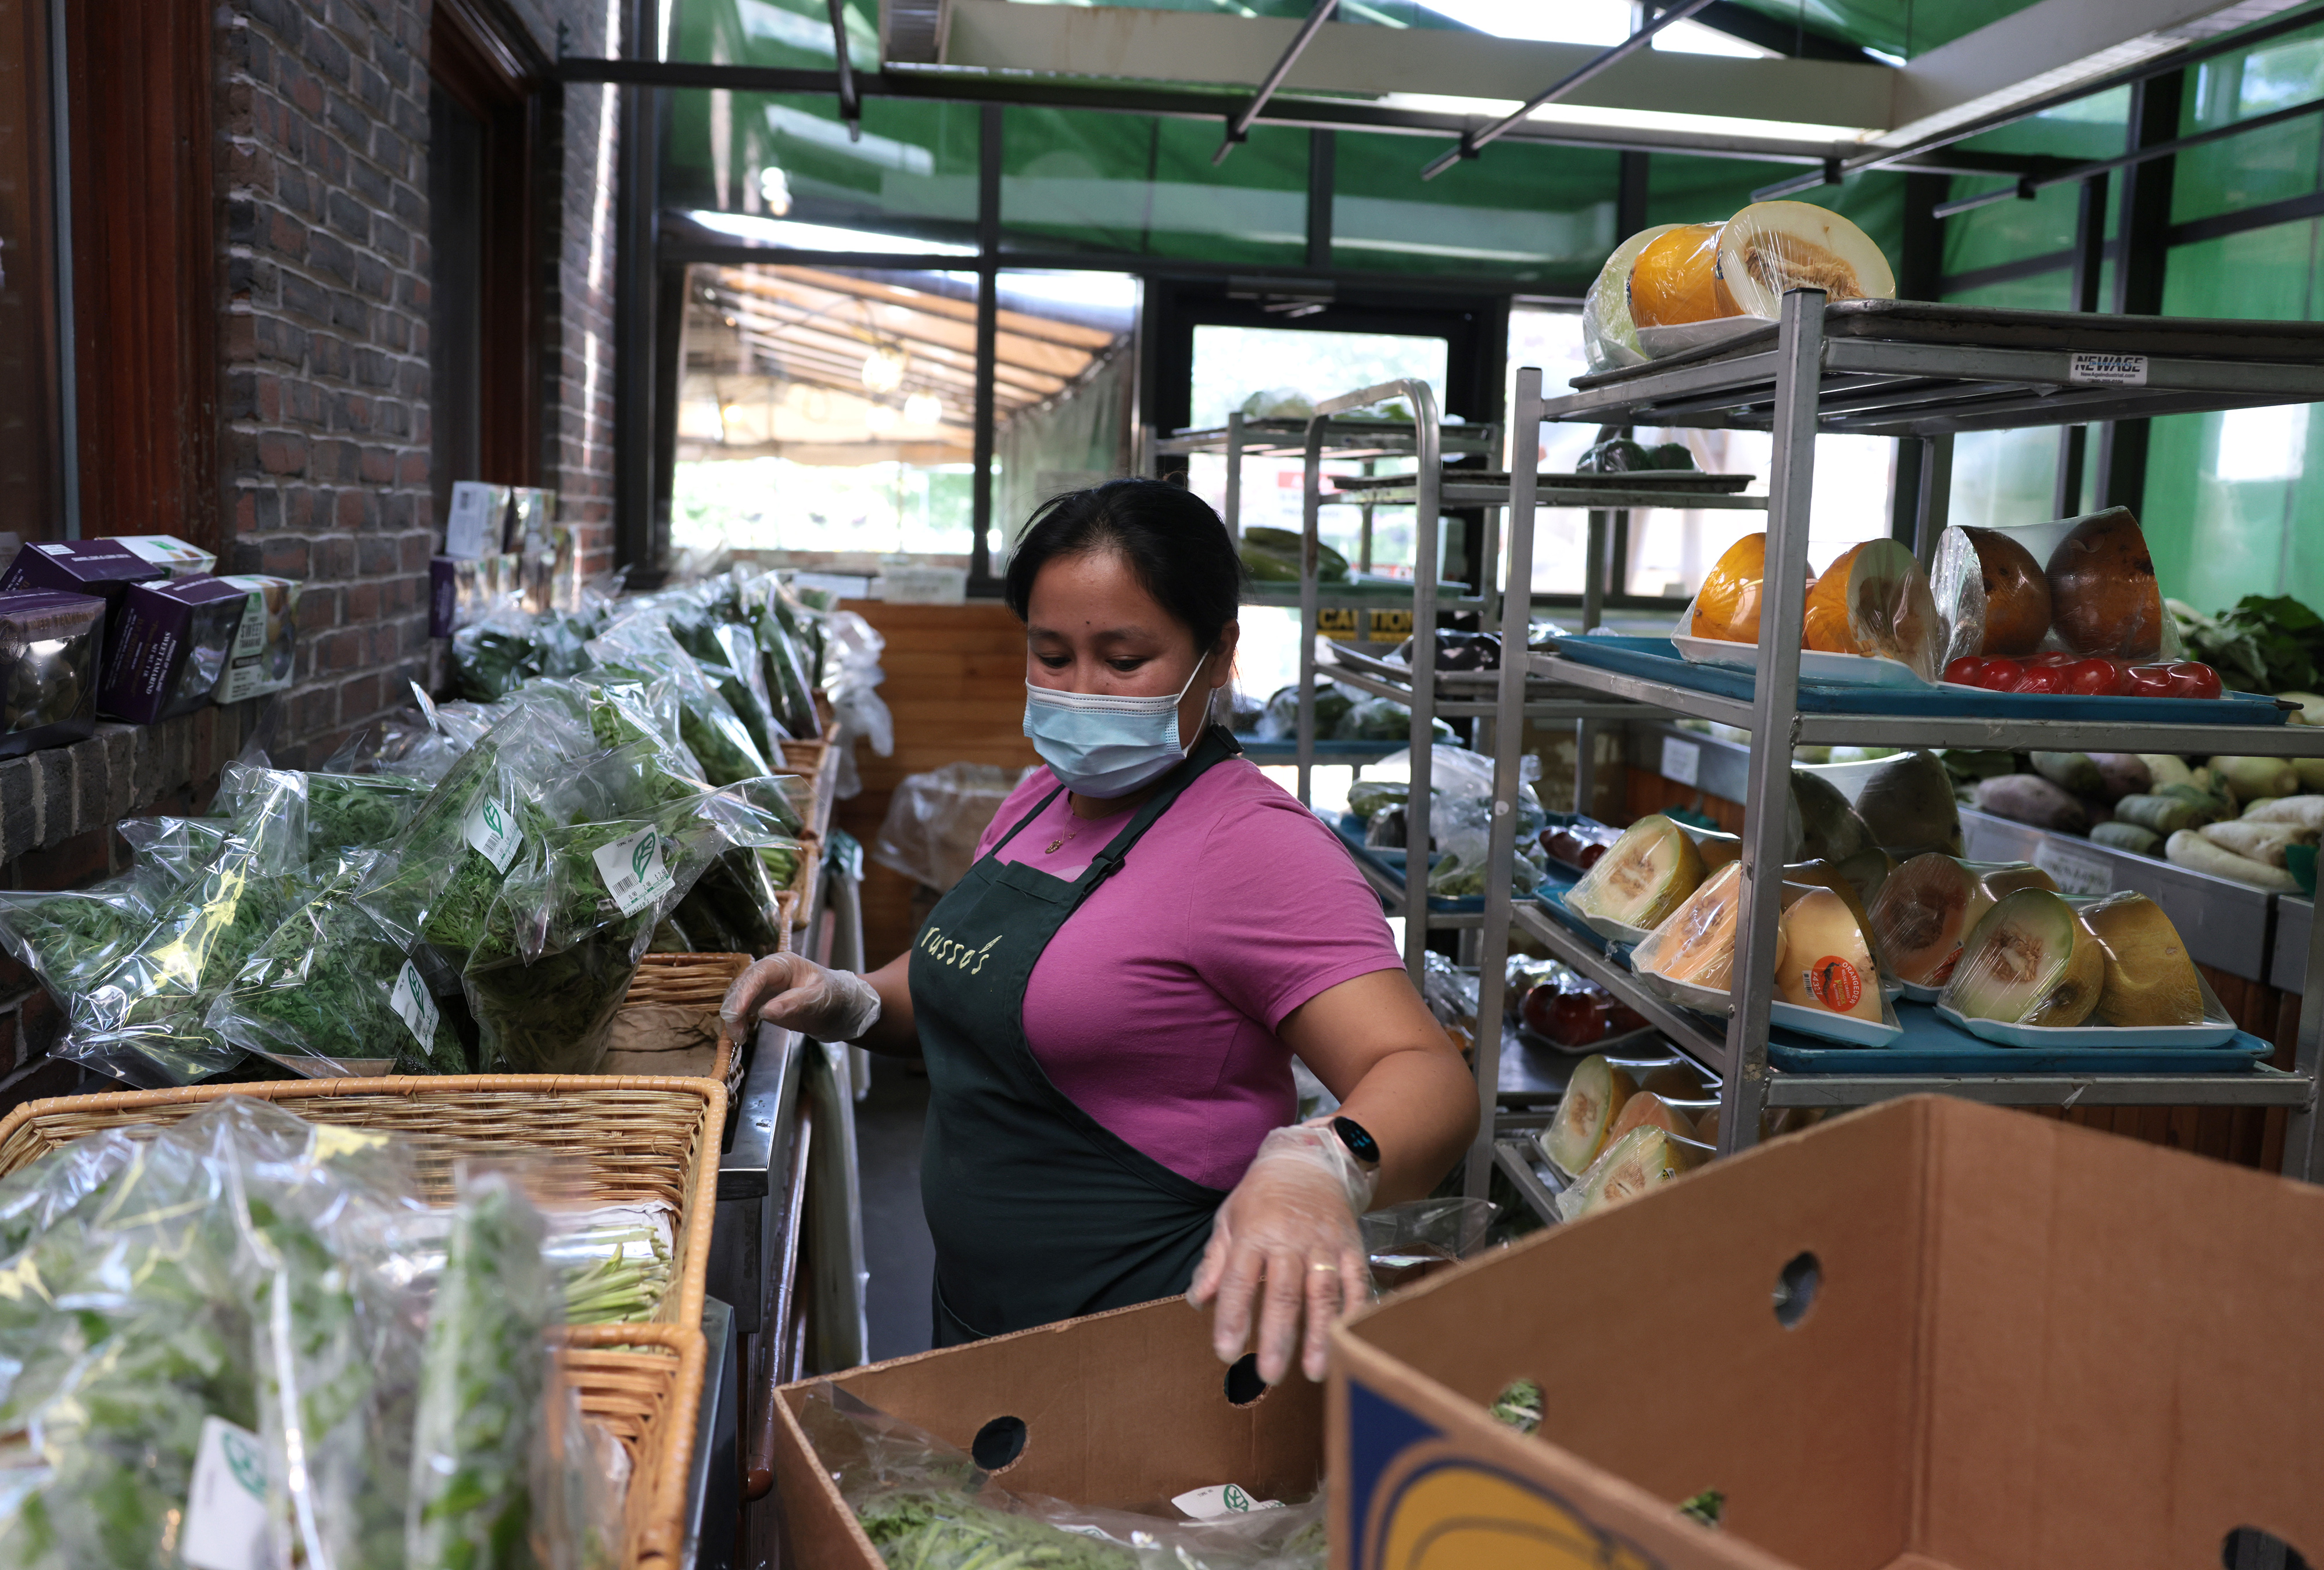 Jacquelin Lopez stocked the shelves with fresh herbs at Russo's.